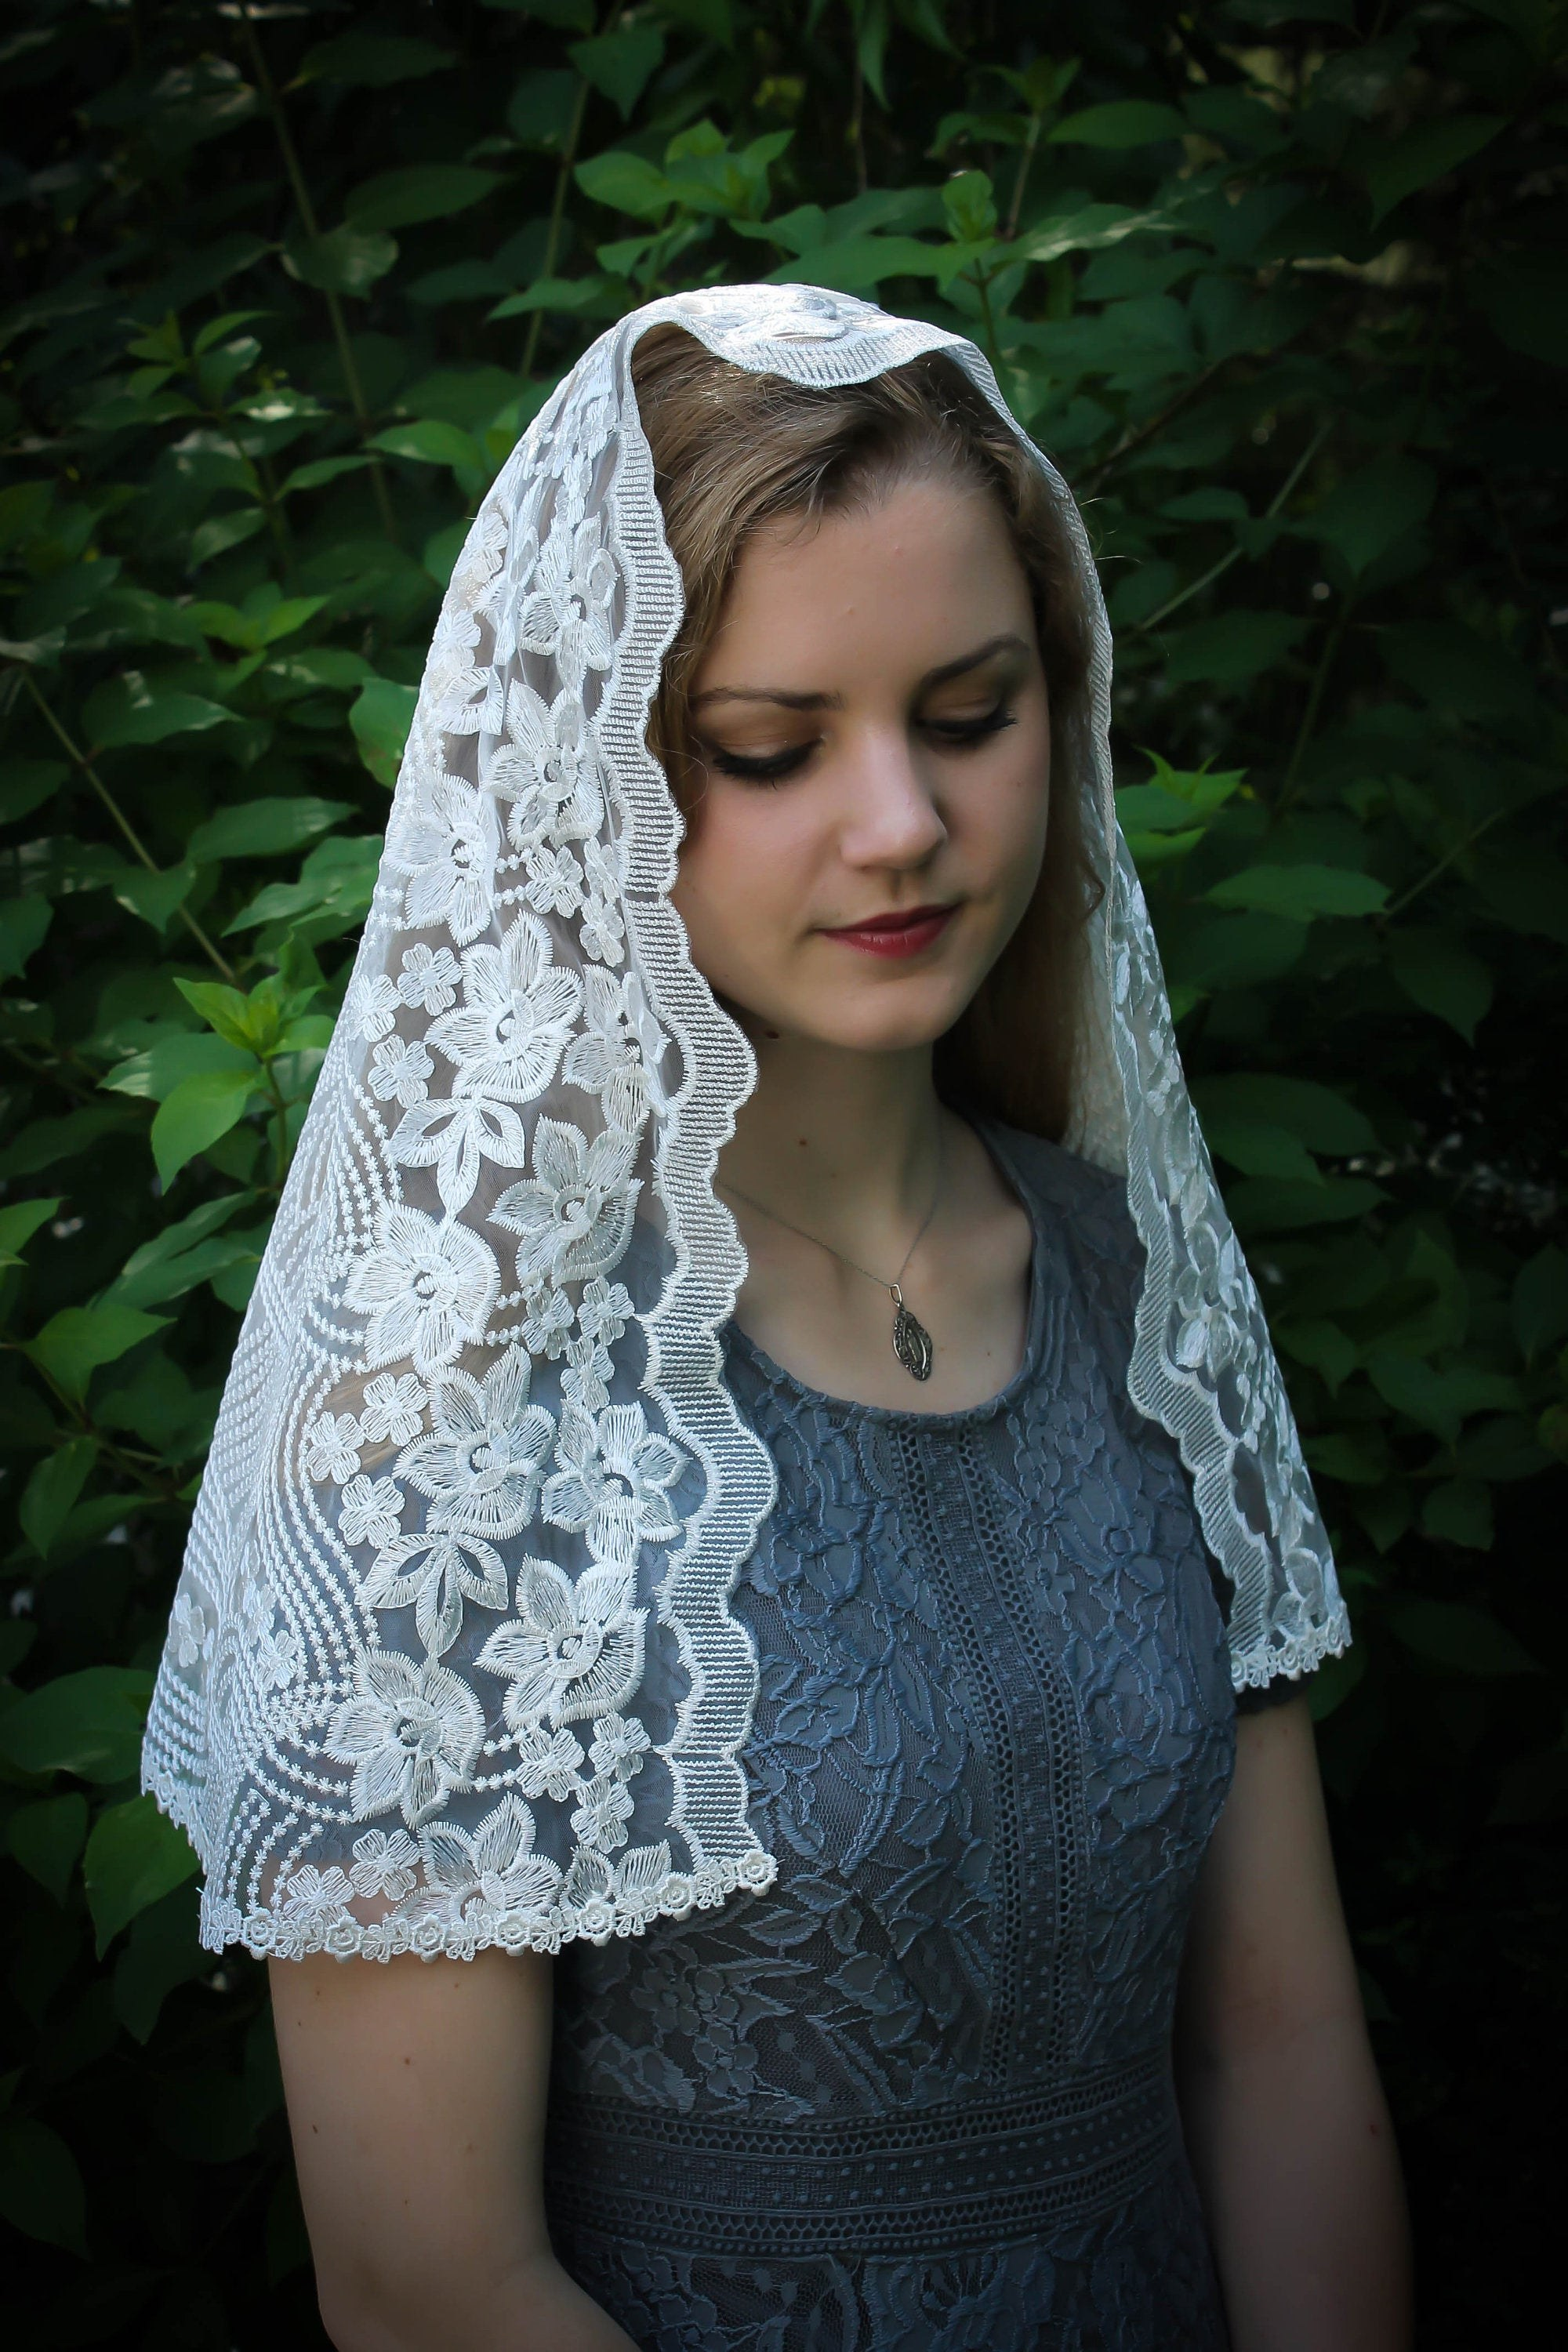 Model Vintage Bridesmaid Dress Hijab 4pde Evintage Veils Our Lady Of Guadalupe Lovely White Floral